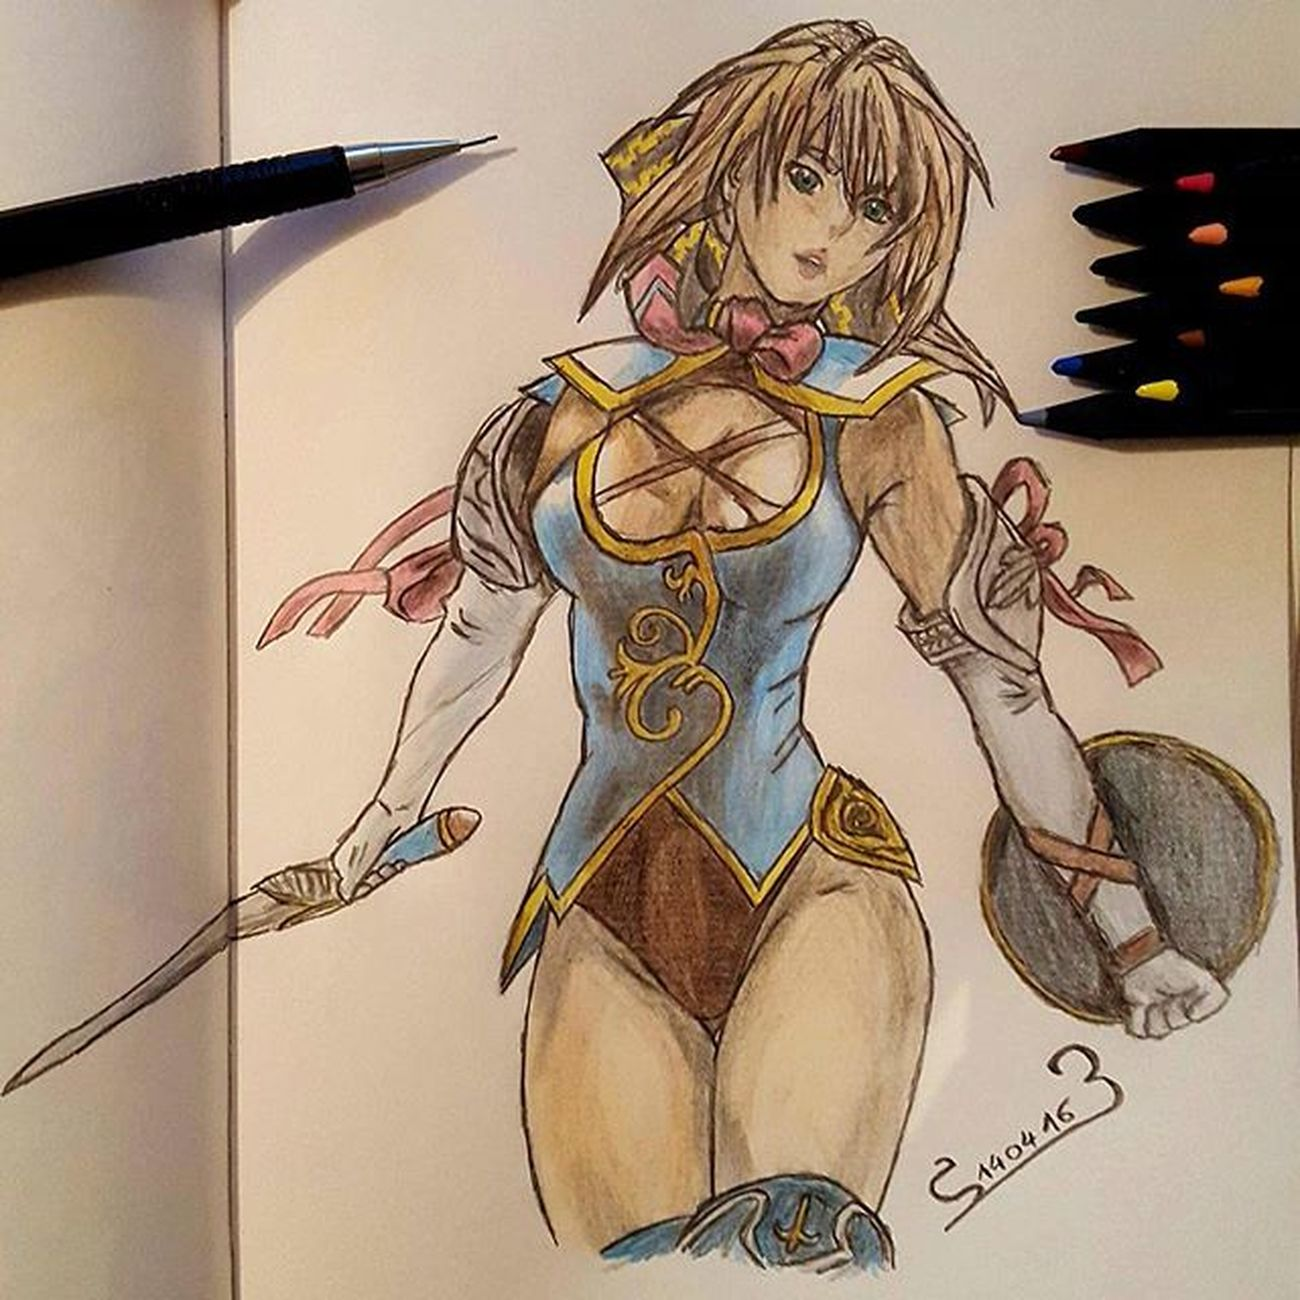 Color Fanart Pencildrawing Pencilart Pencils Criterium Soulcalibur Cassandra Sword